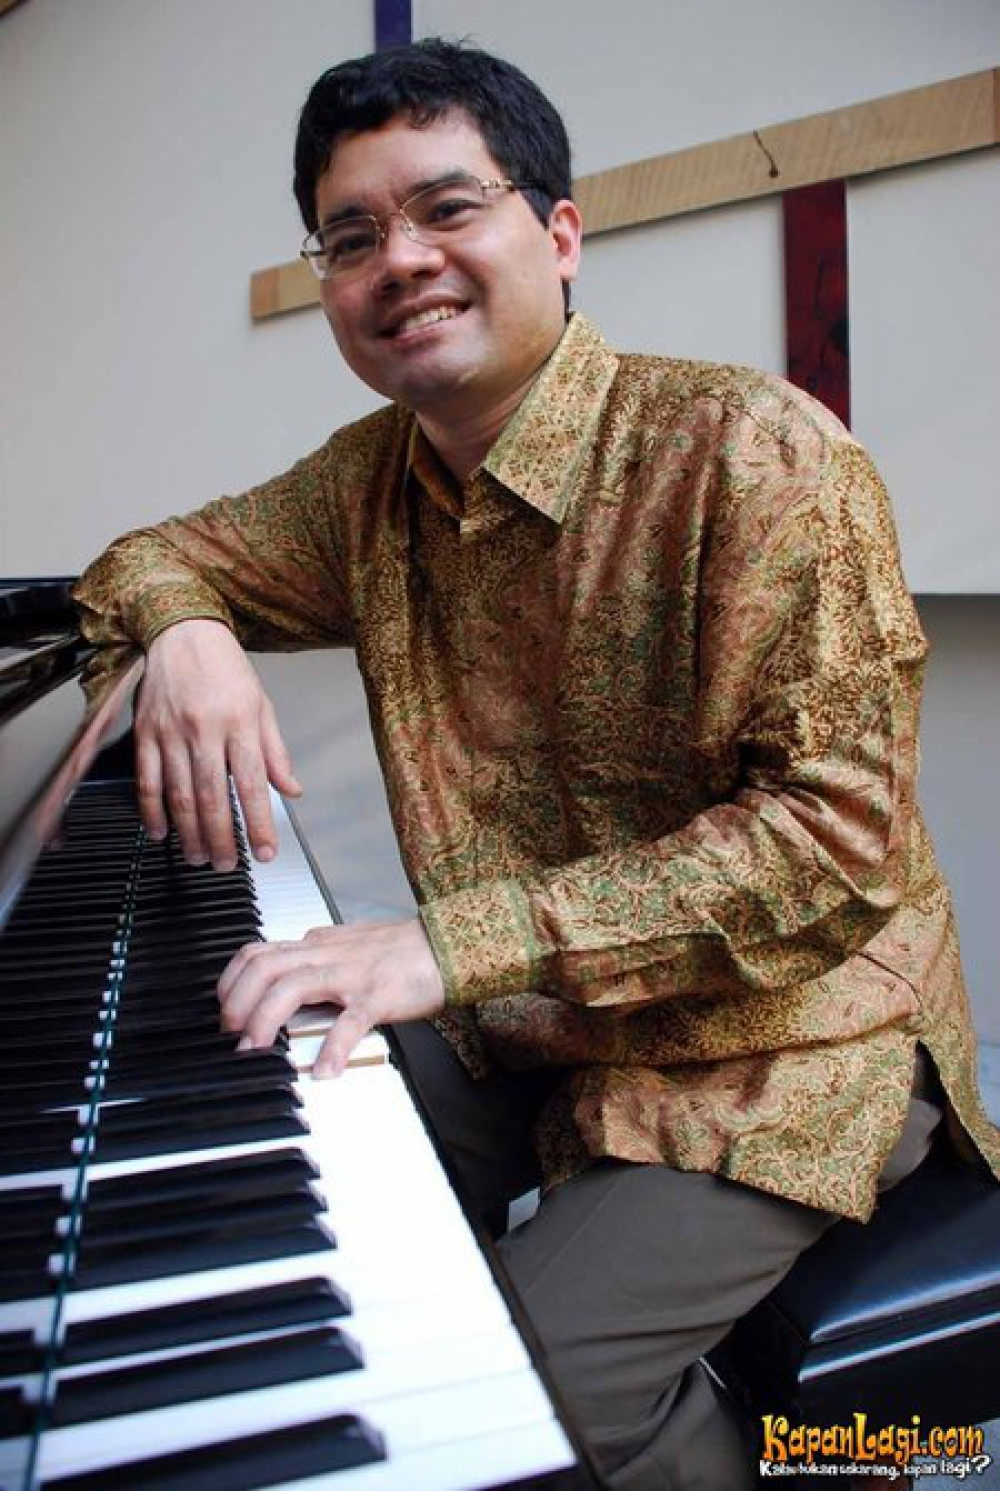 A Great Pianist from Indonesia